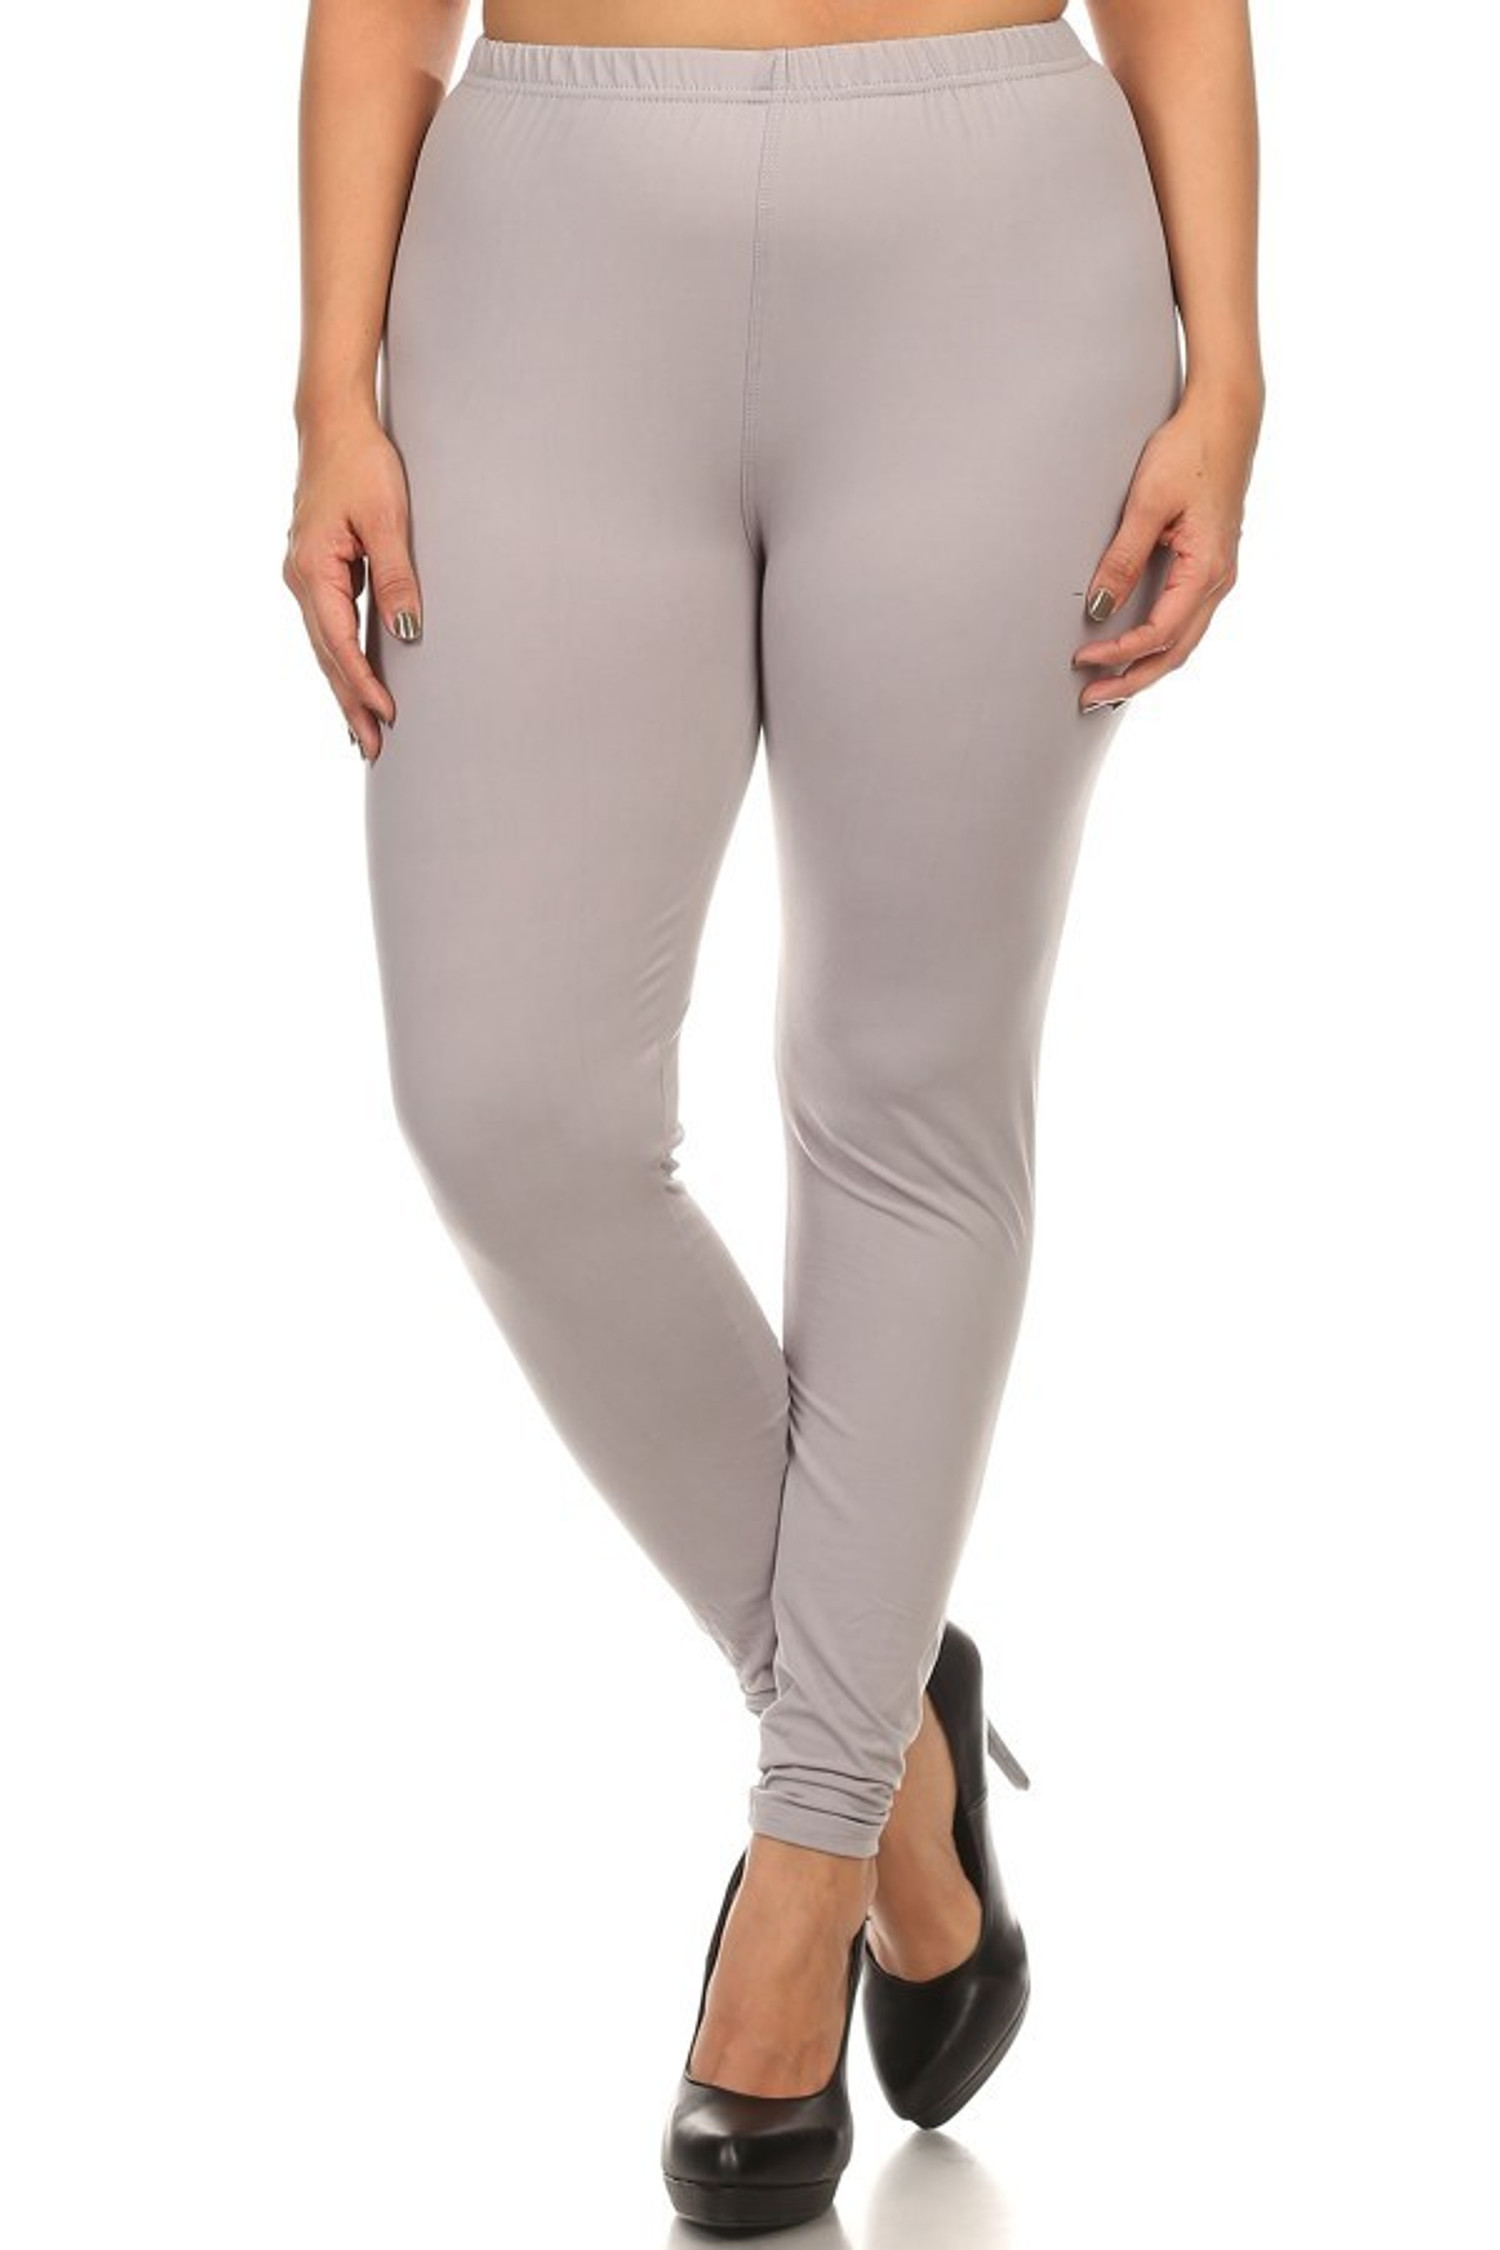 Brushed Basic Solid Leggings Plus Size - 3X-5X